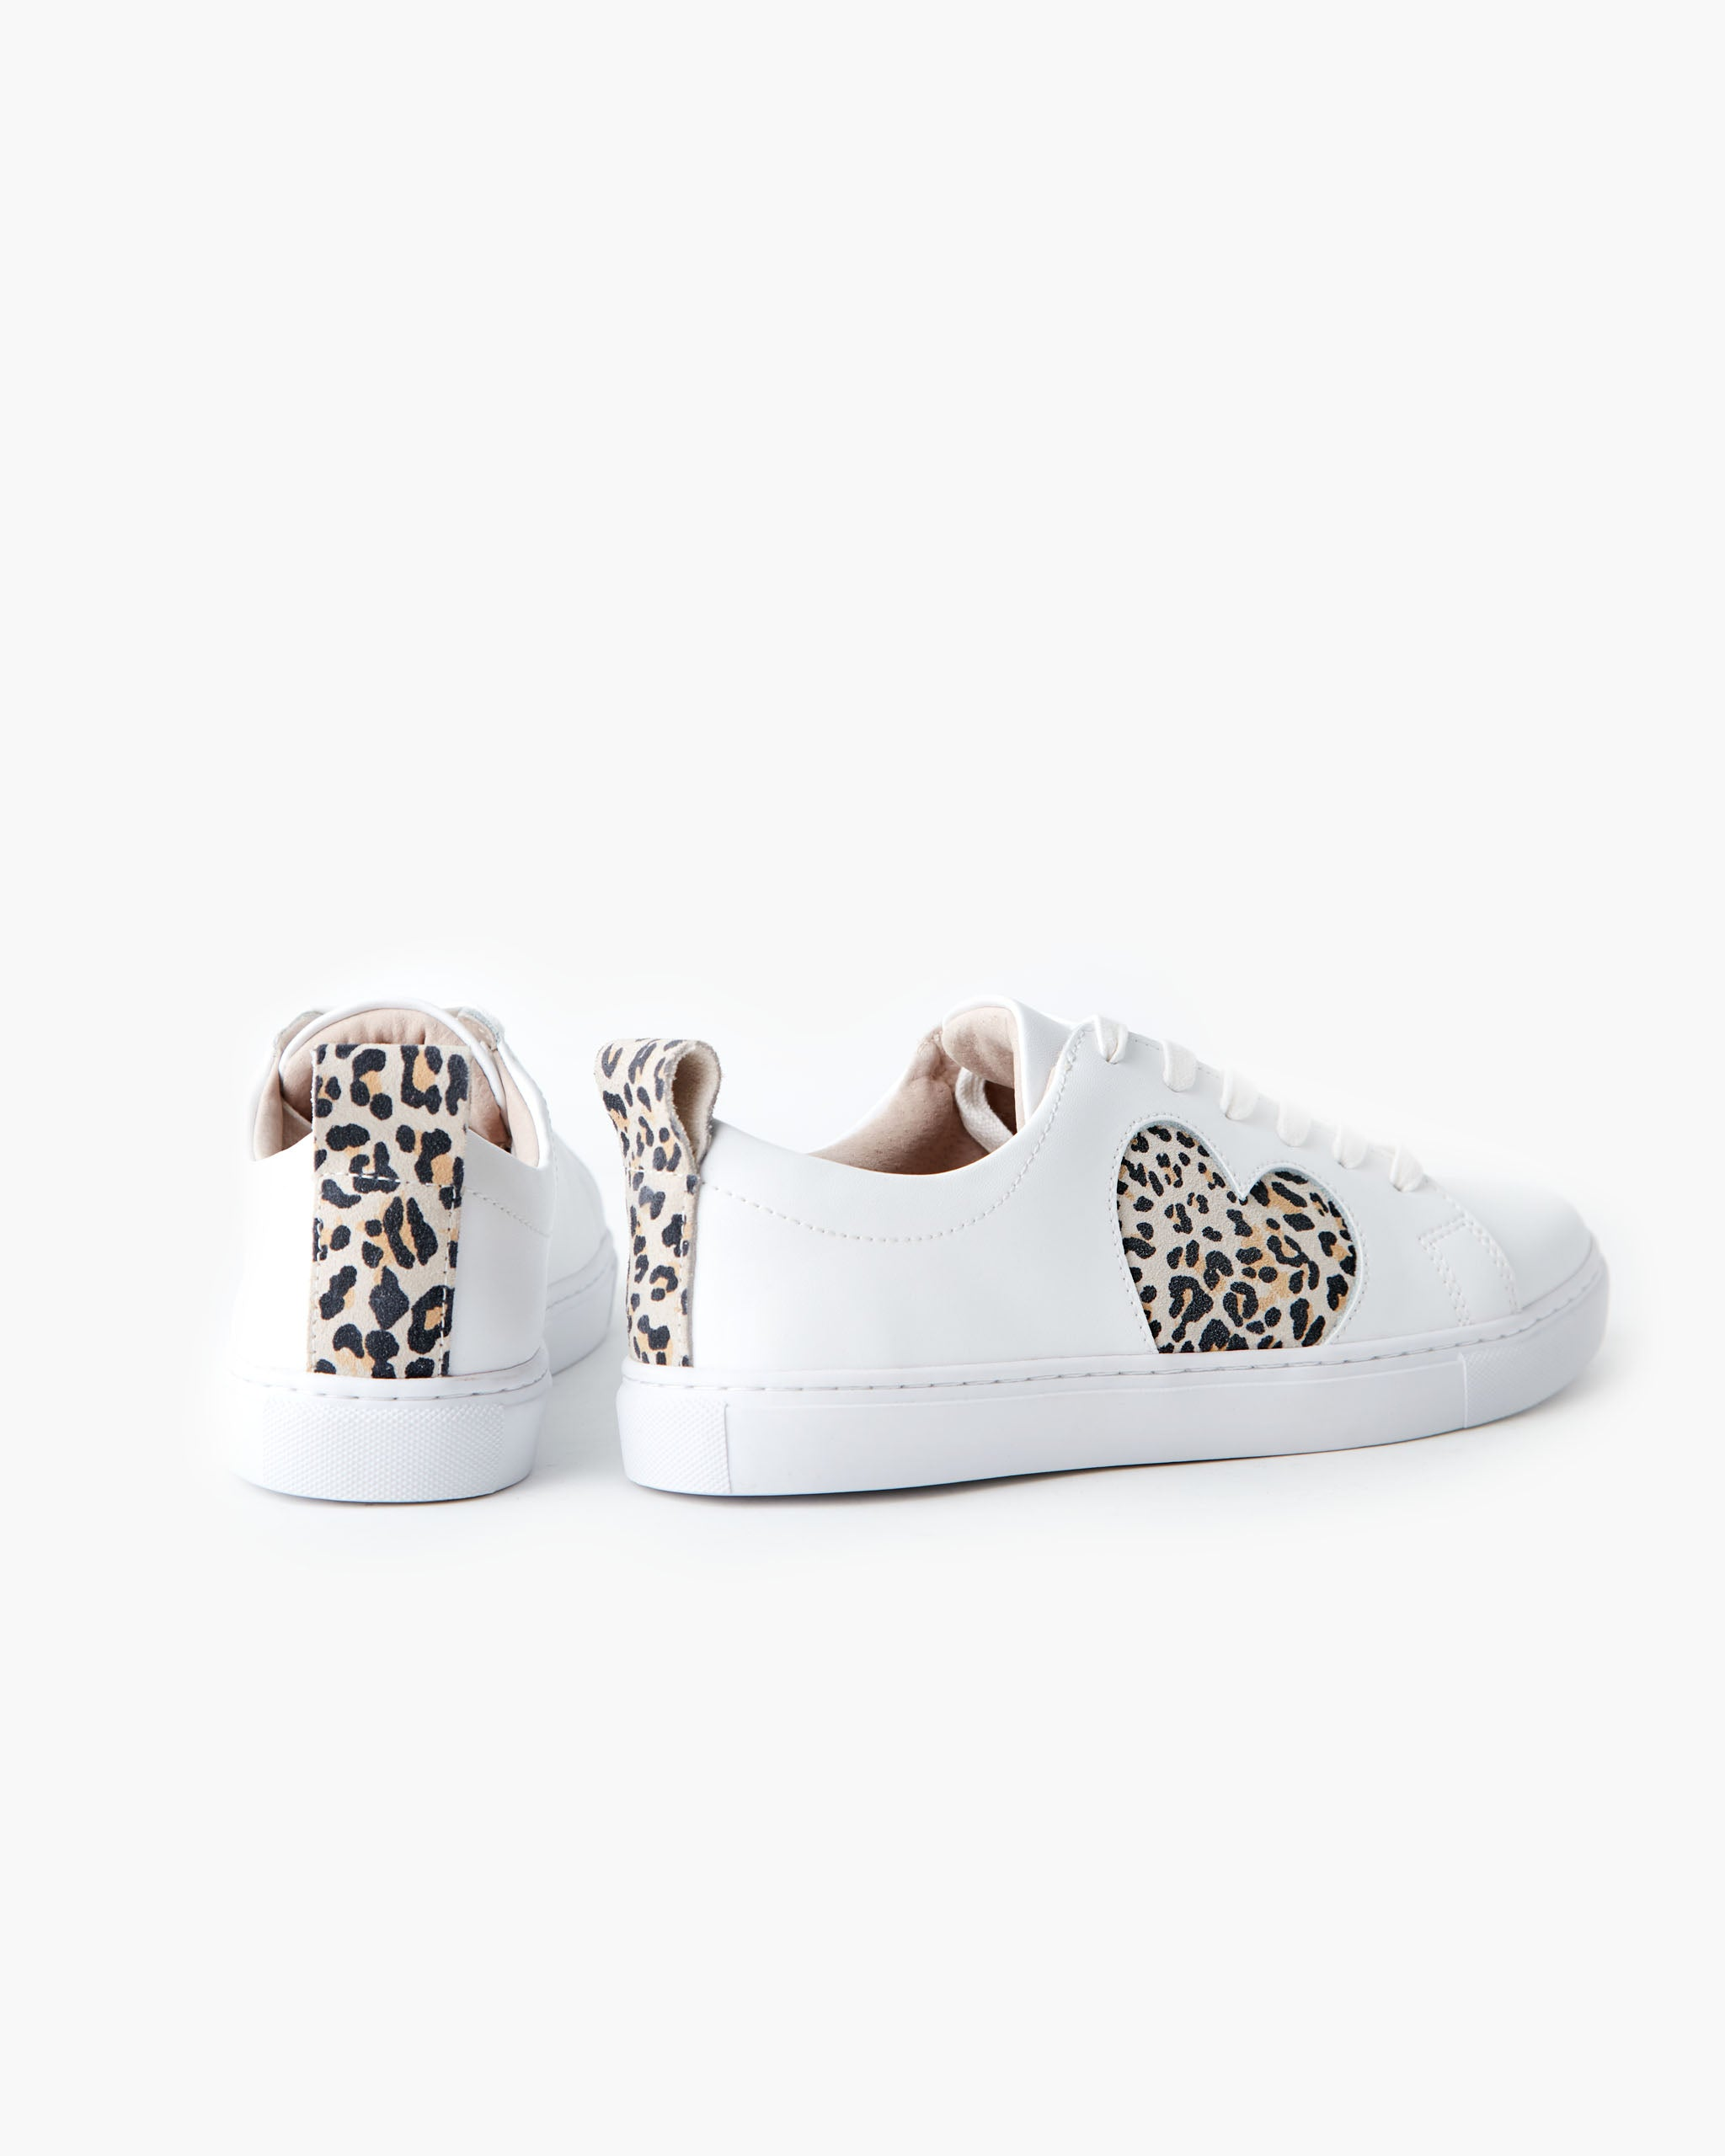 Heart Leather Sneaker - Honey Leopard